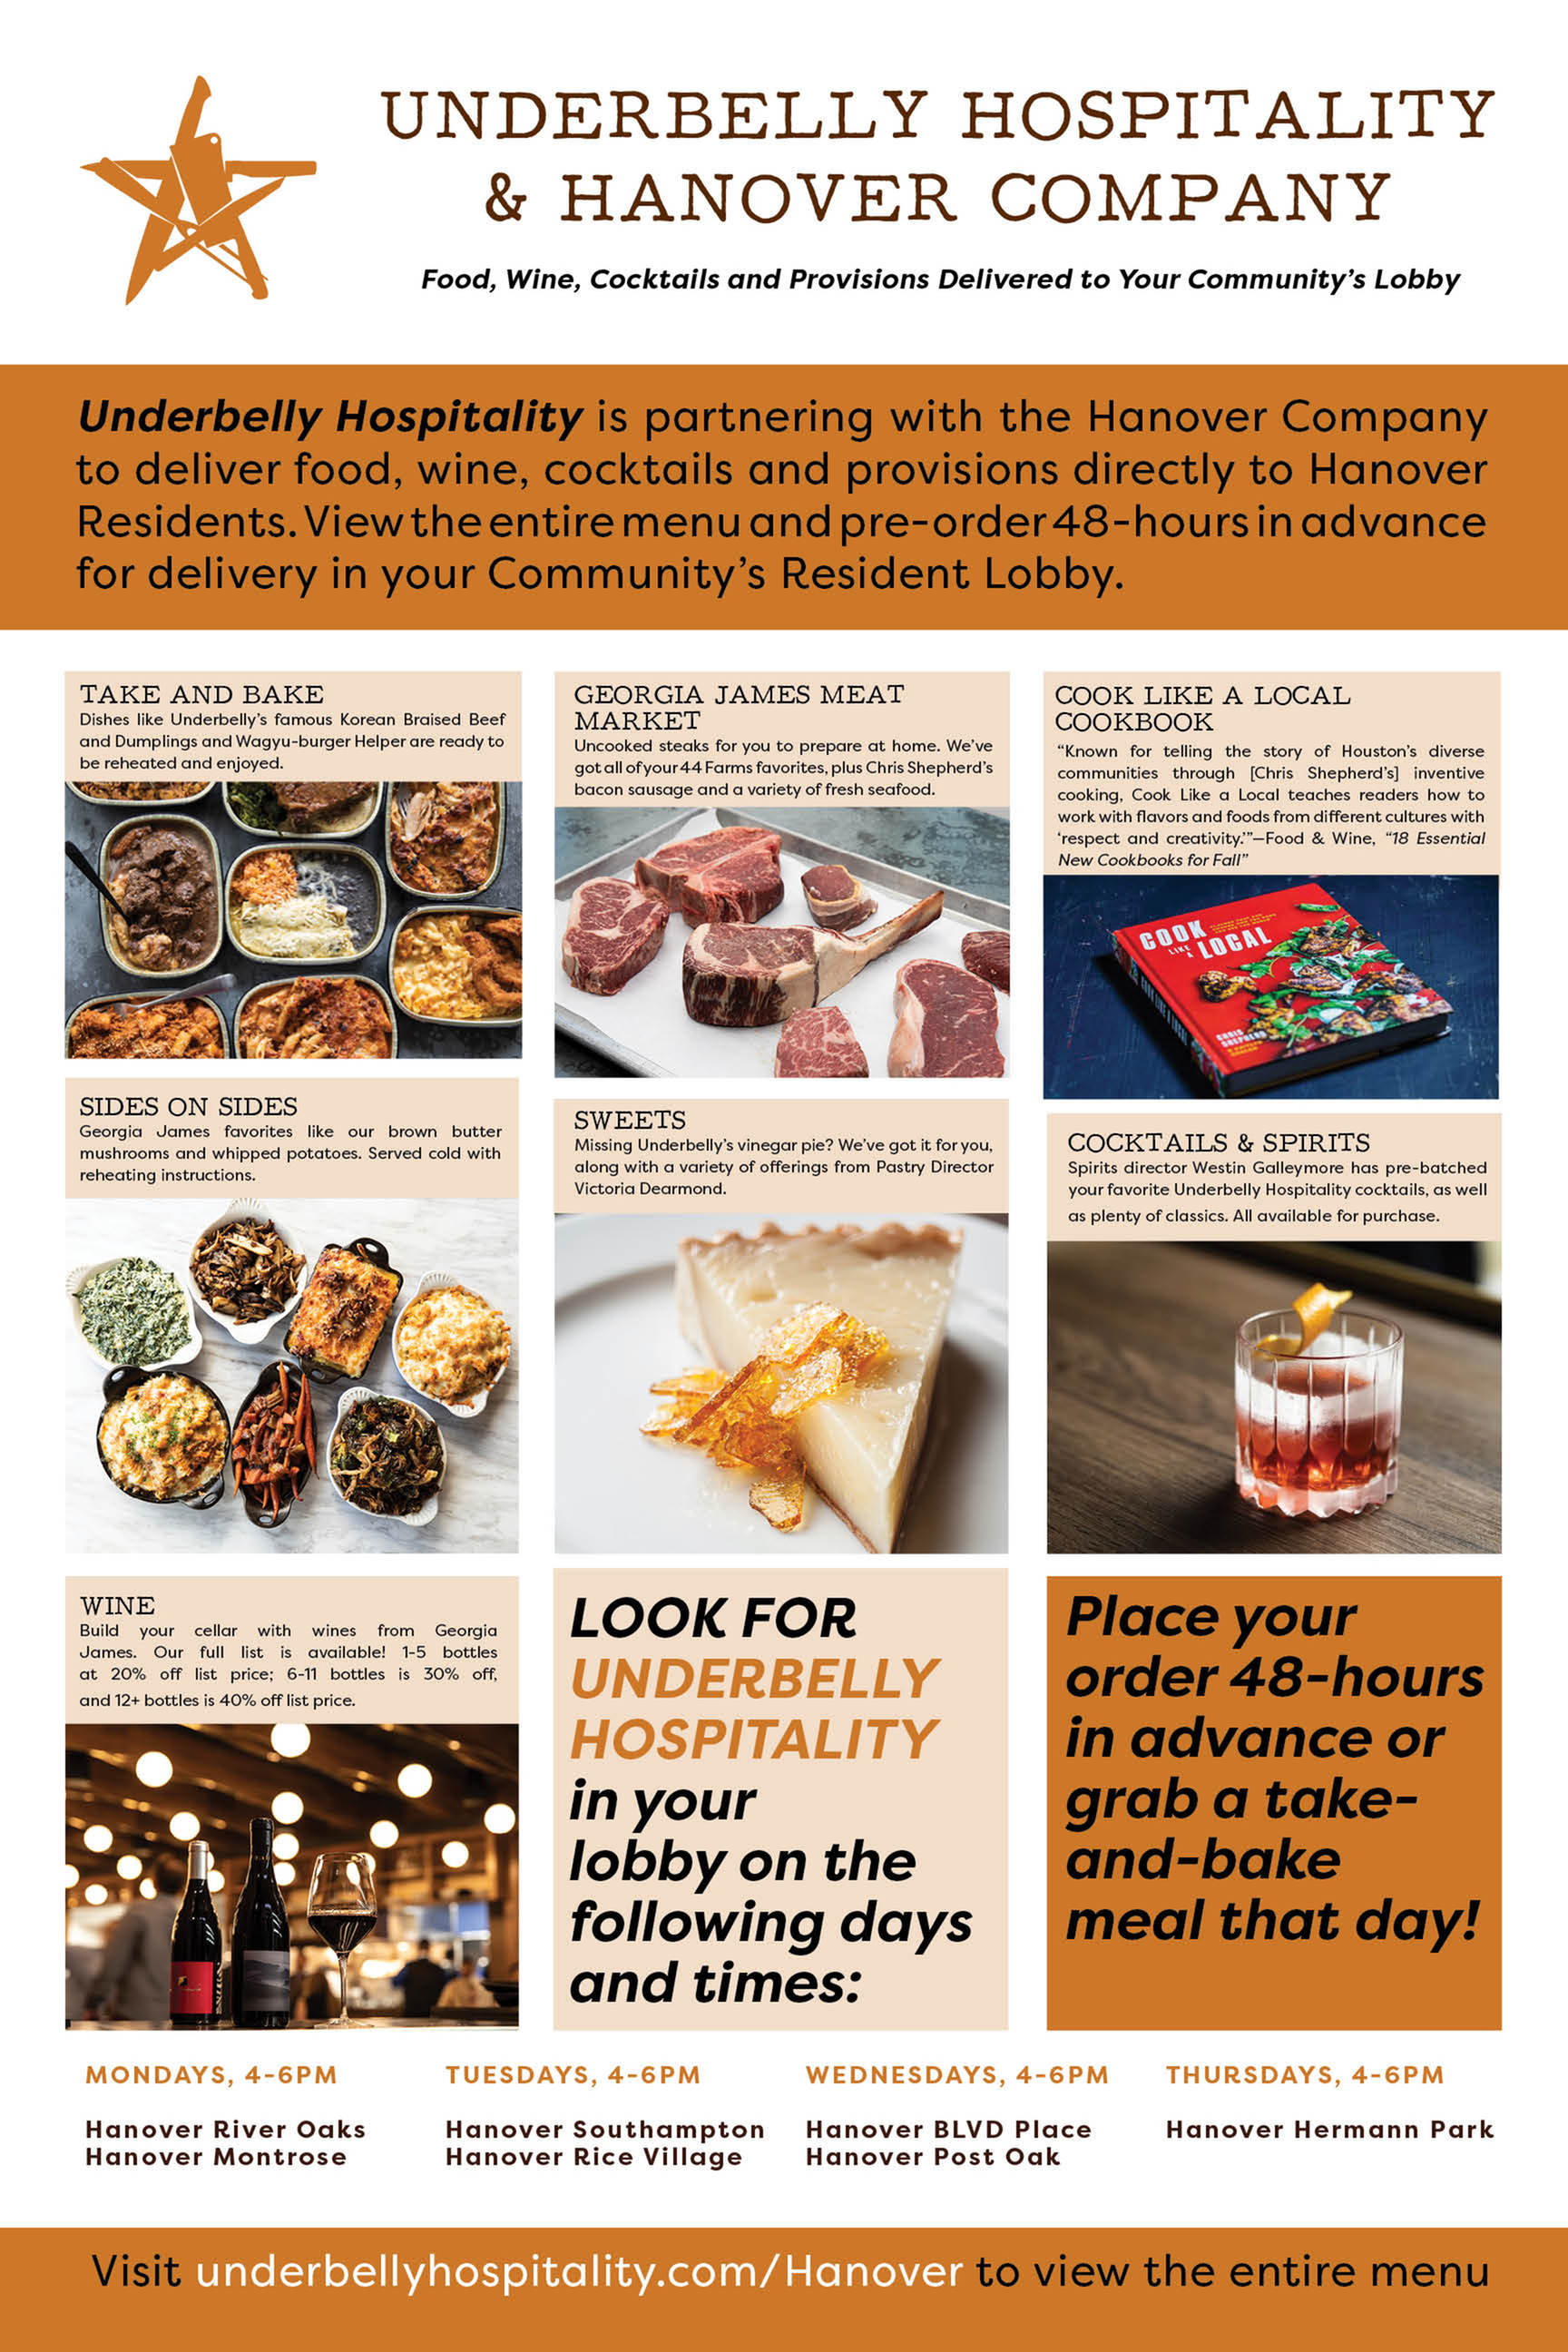 Underbelly Hospitality & Hanover Company: Delivered to Your Community Lobby-image